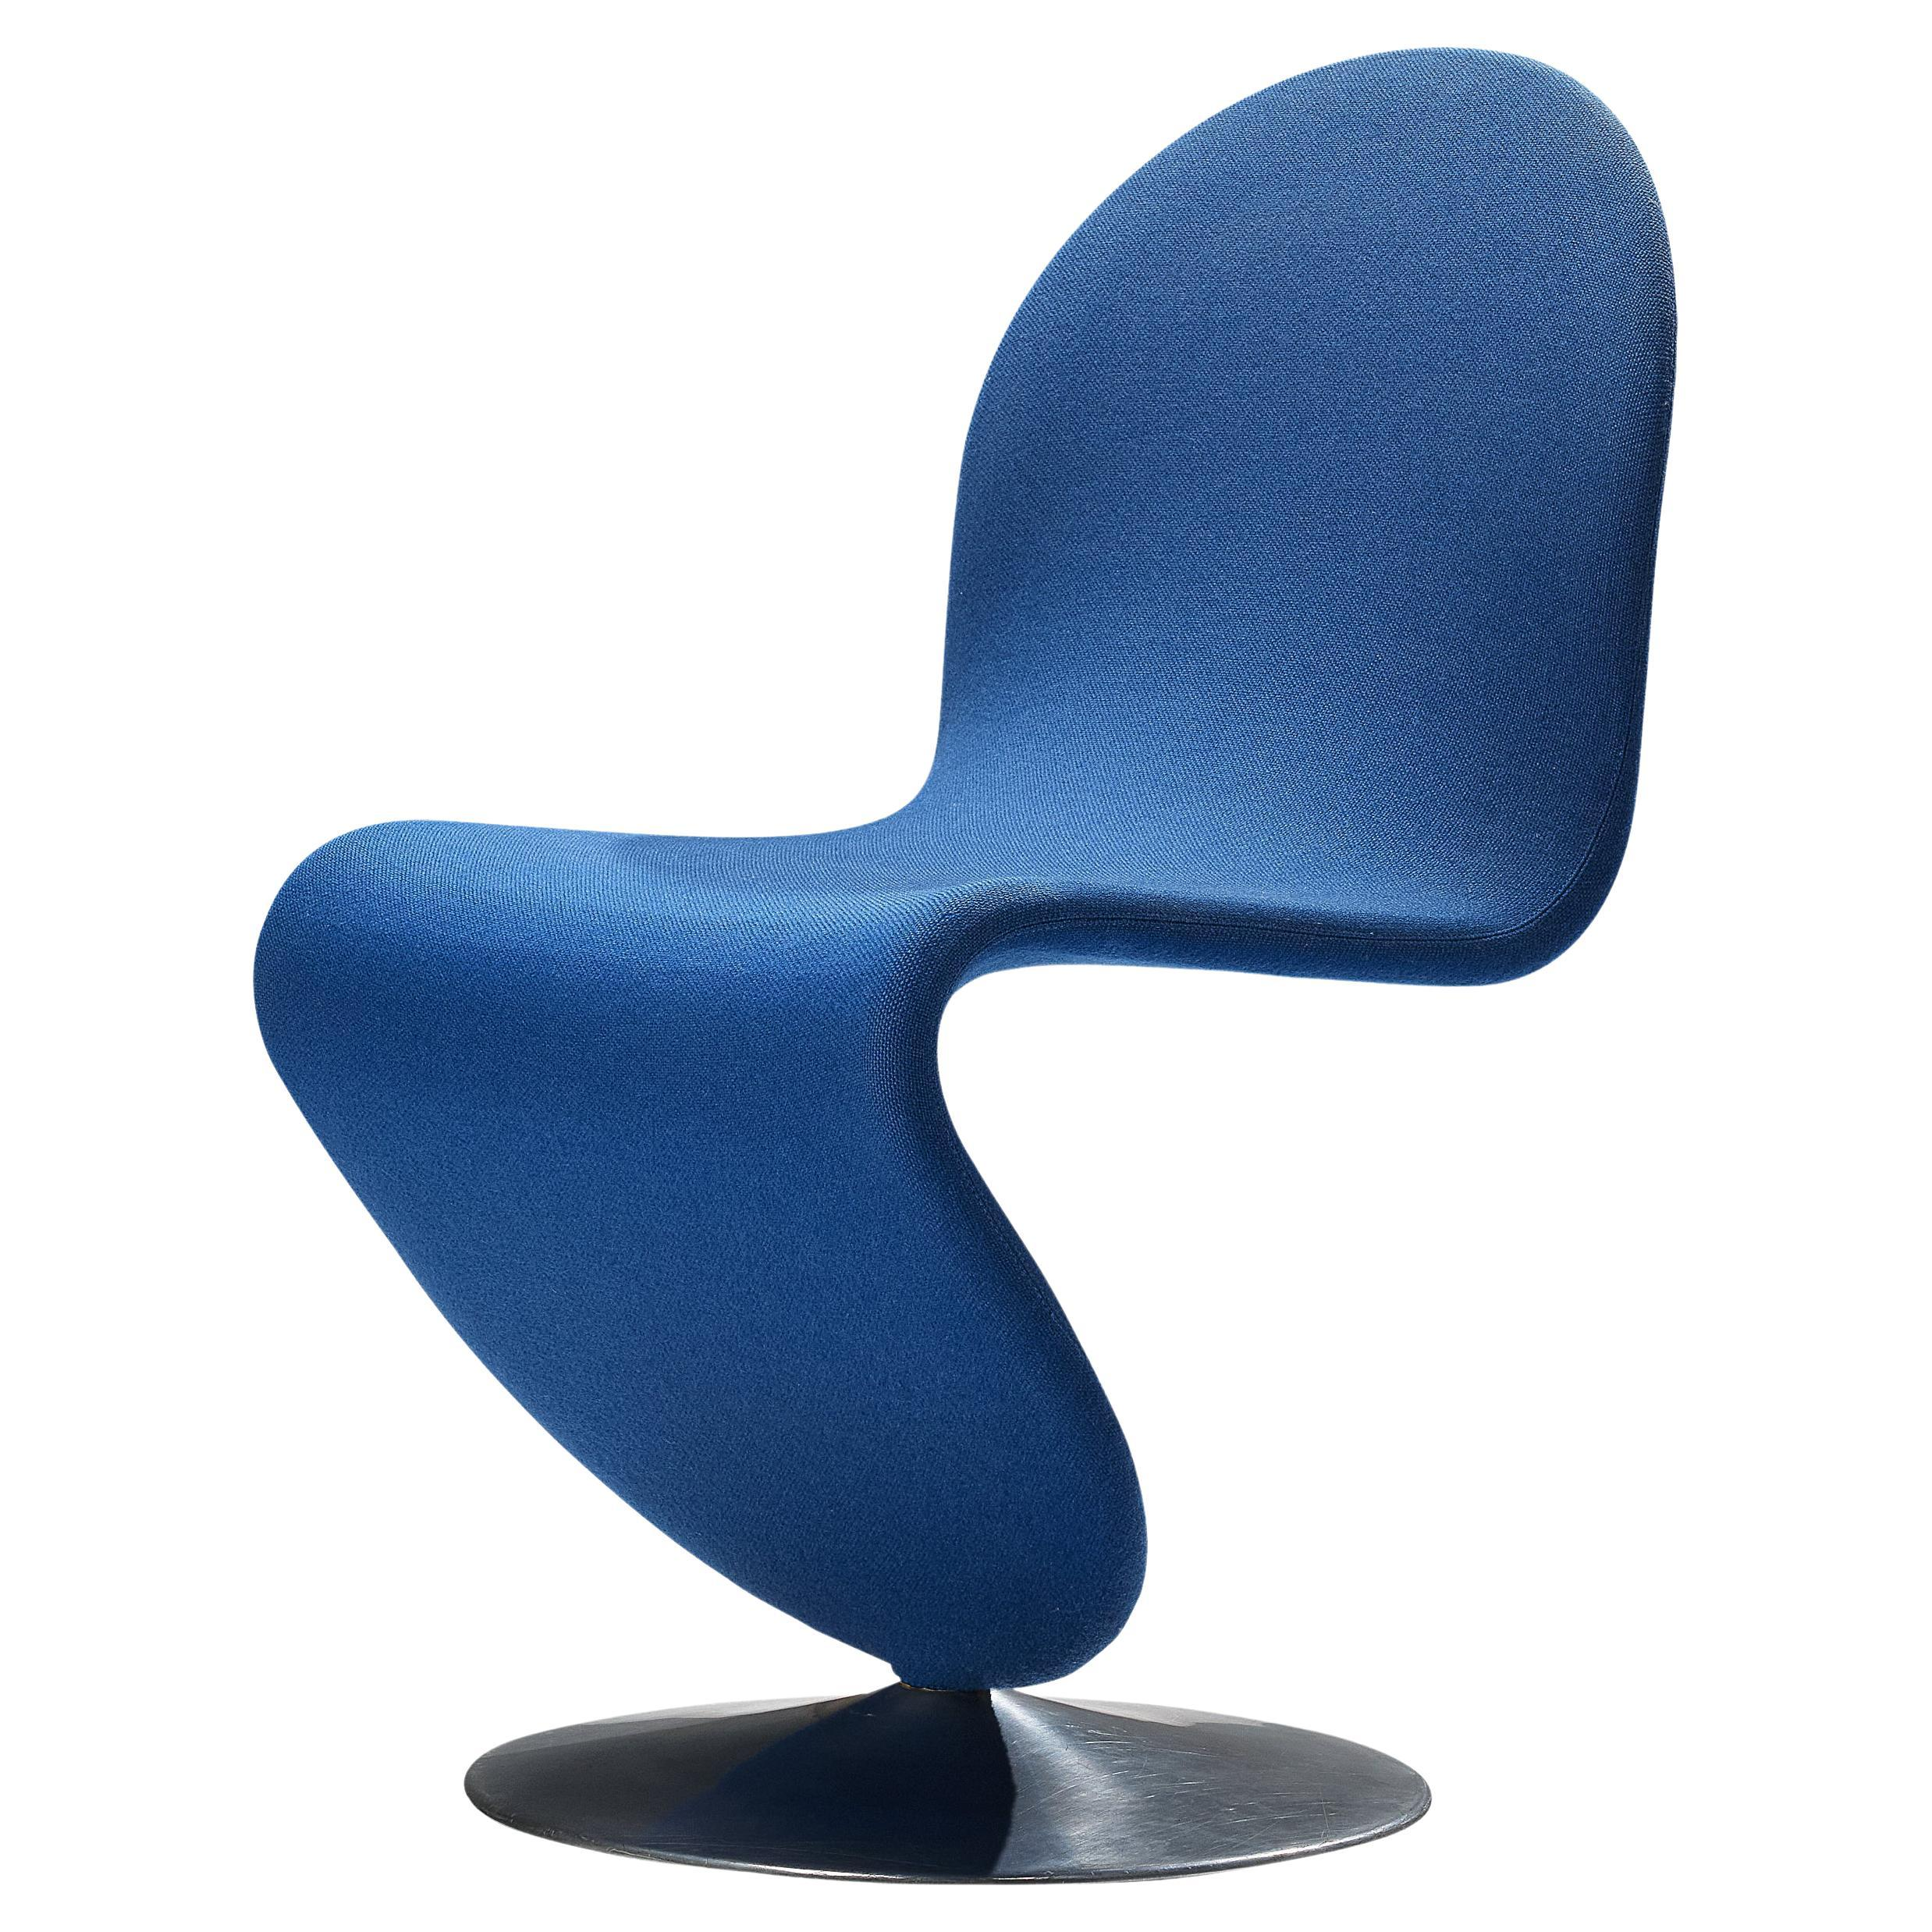 Verner Panton for Fritz Hansen 'Chair A' Chair in Blue Upholstery